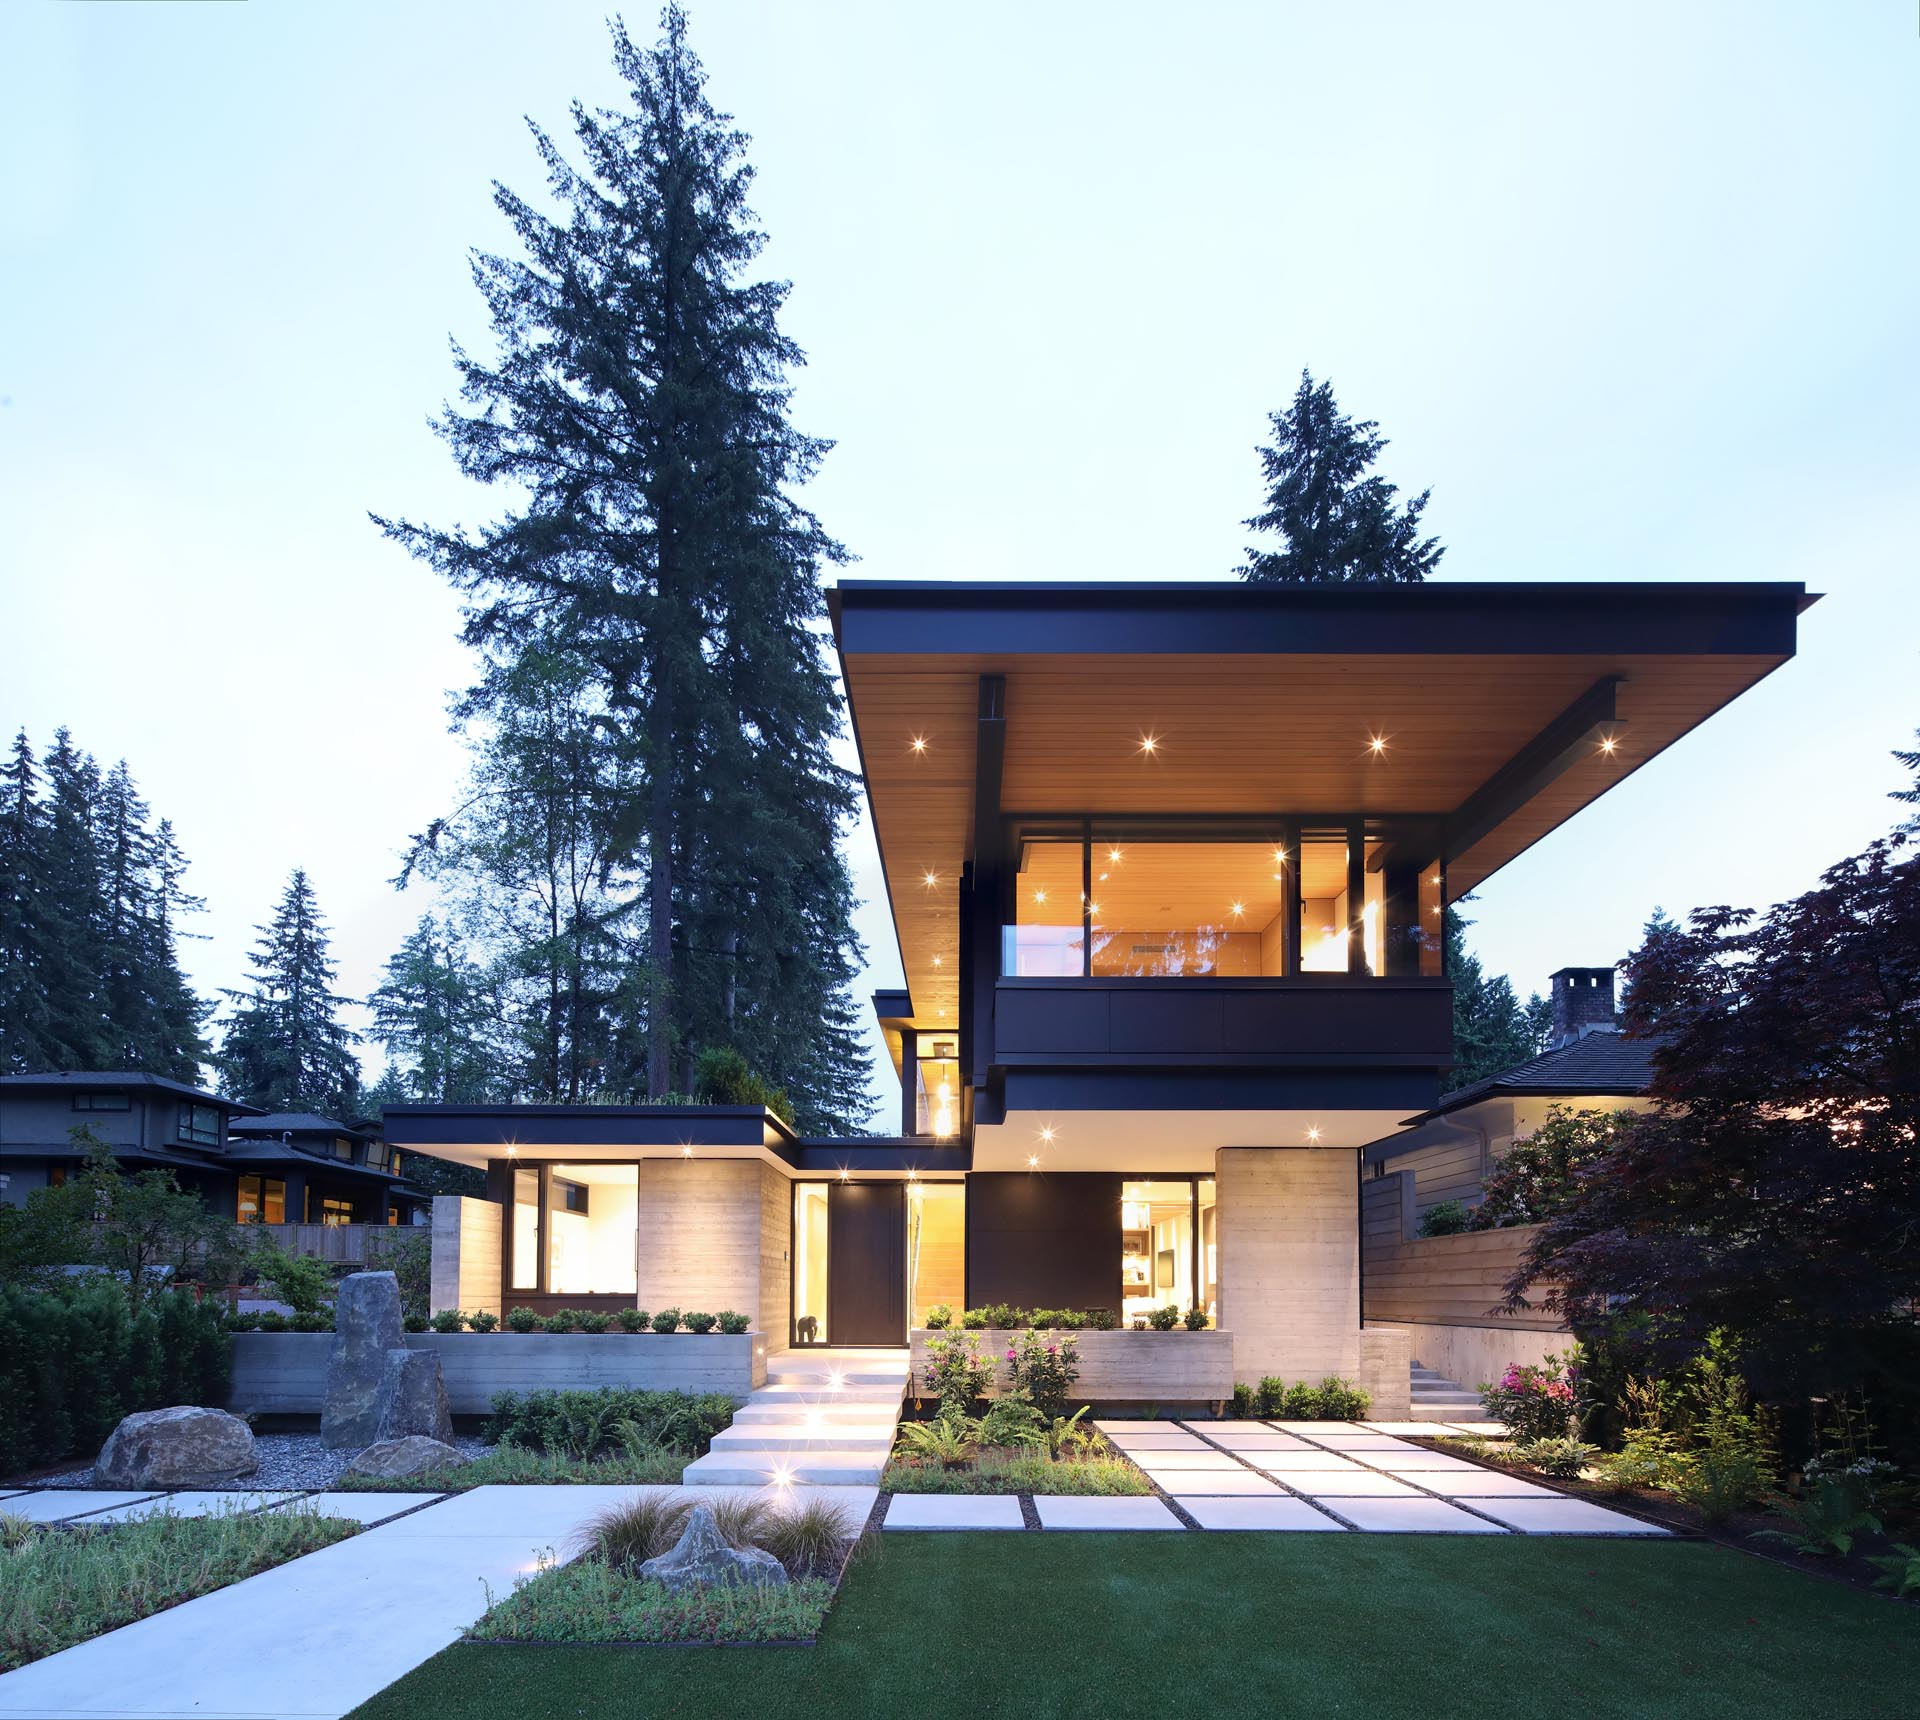 One key design element of this modern west coast home is the overhanging roof that extends away from the house, and protects it from the elements.